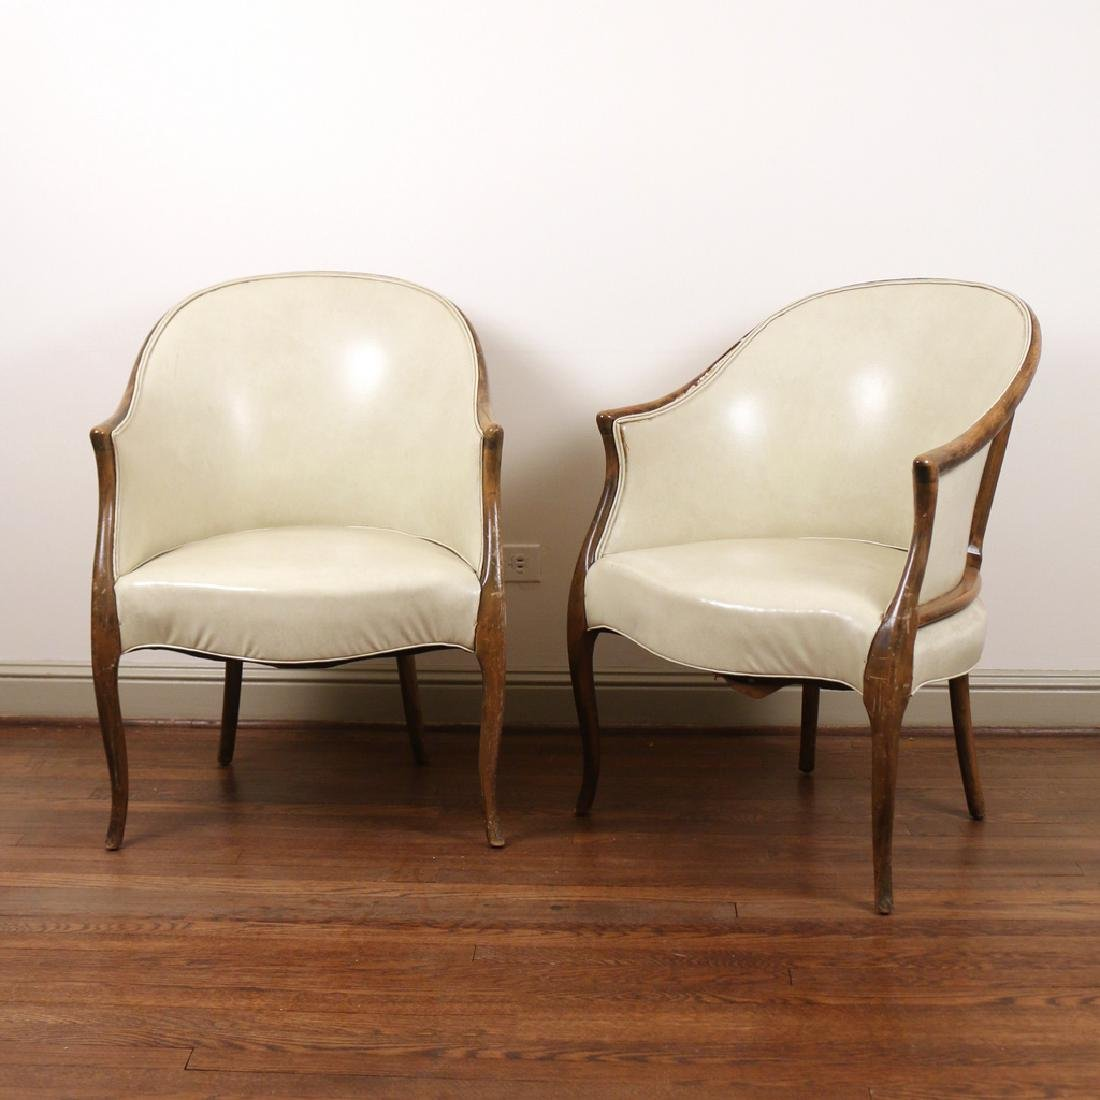 PAIR GEORGE III-STYLE TUB CHAIRS